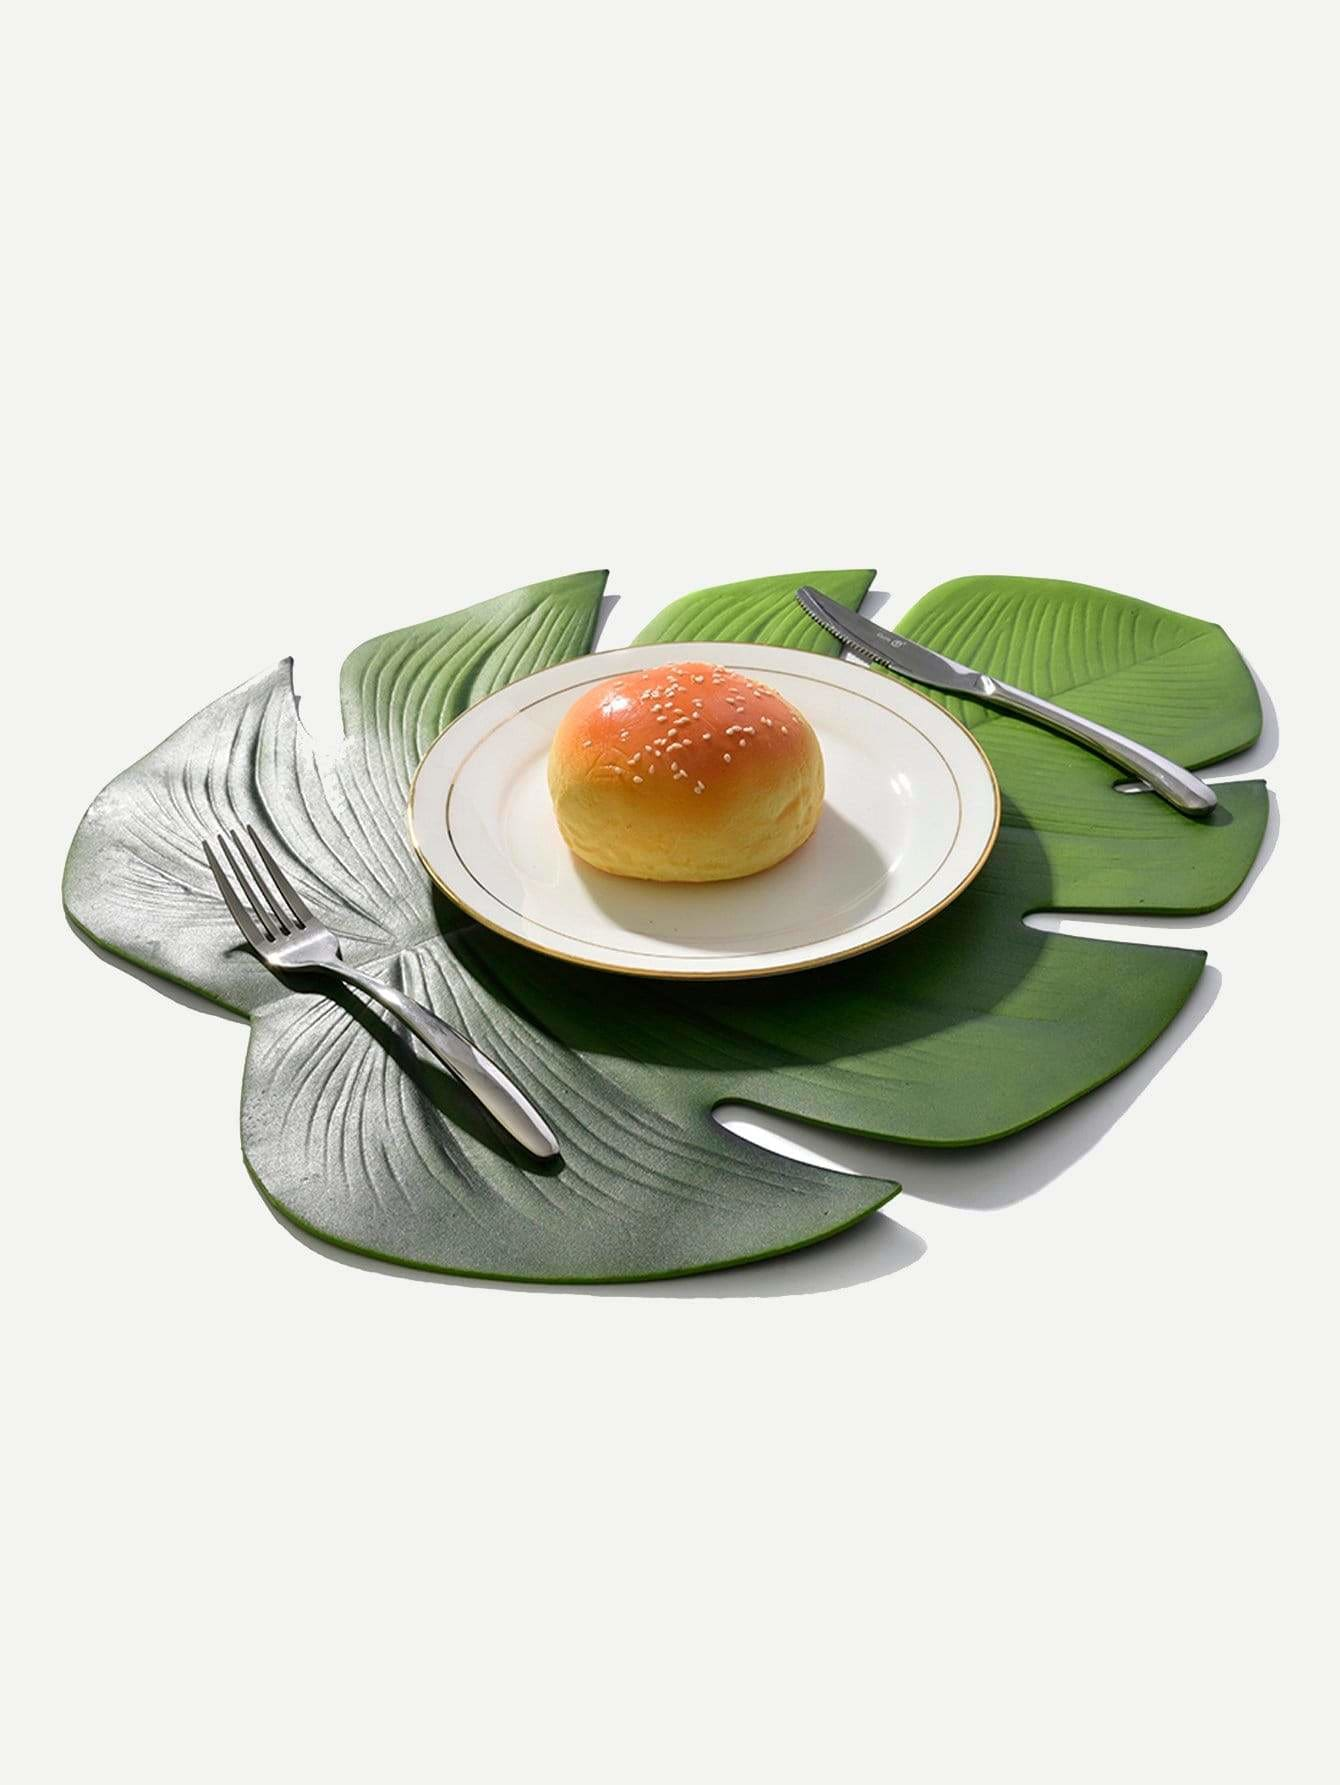 Palm Leaf Shaped Placemat 1Pc - One-Size / One Color - Dining